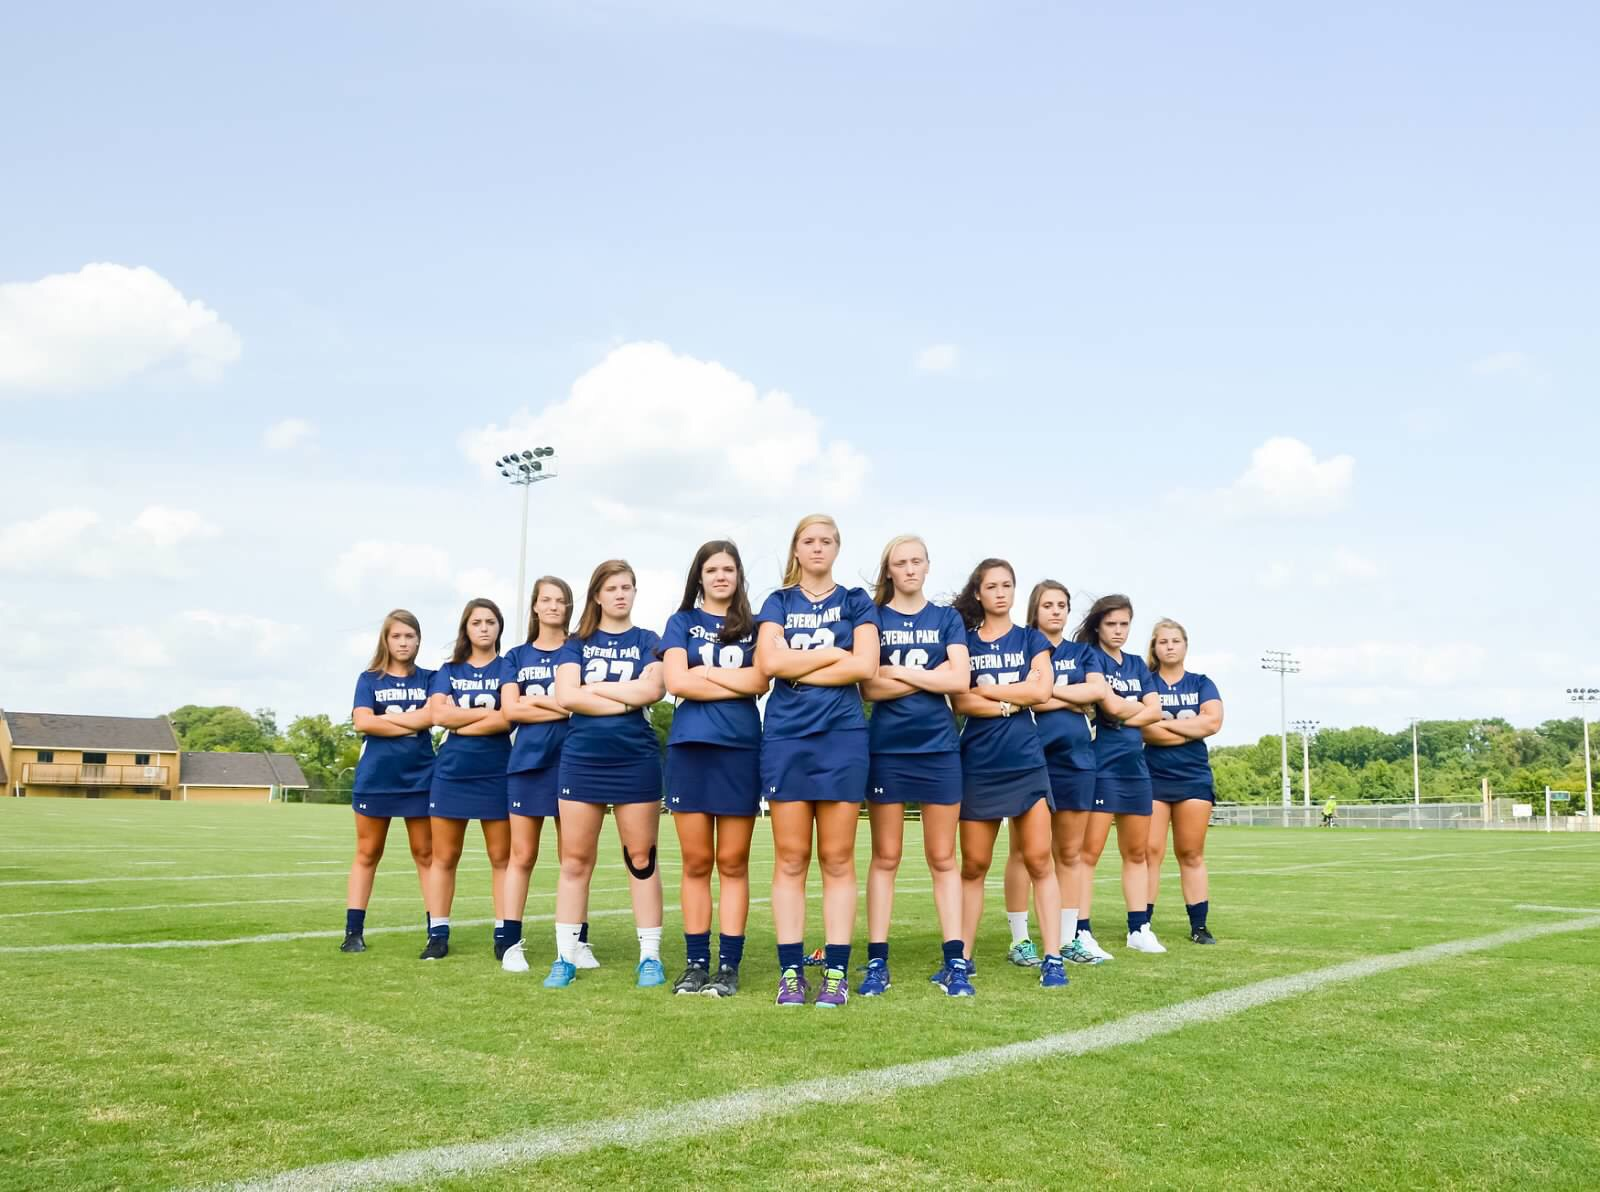 """Seniors Mallary Sellars, Megan Brannen and Rachel Lewis are leading the SPHS field hockey team to victory this season. The team has been working hard every day for redemption of the state champion title. """"Our goal is to win states this year, so we're working harder than ever,"""" said Sellars. Photo courtesy of Rachel Lewis."""